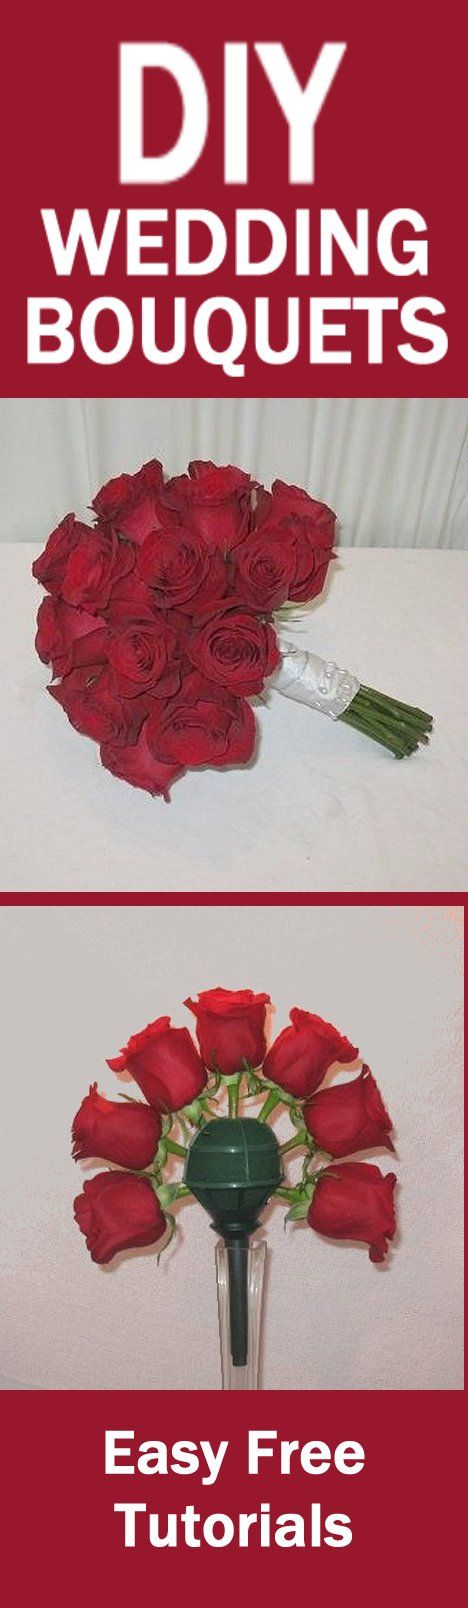 How To Make Wedding Bouquets And Corsages : How to make bridal bouquets easy wedding flower